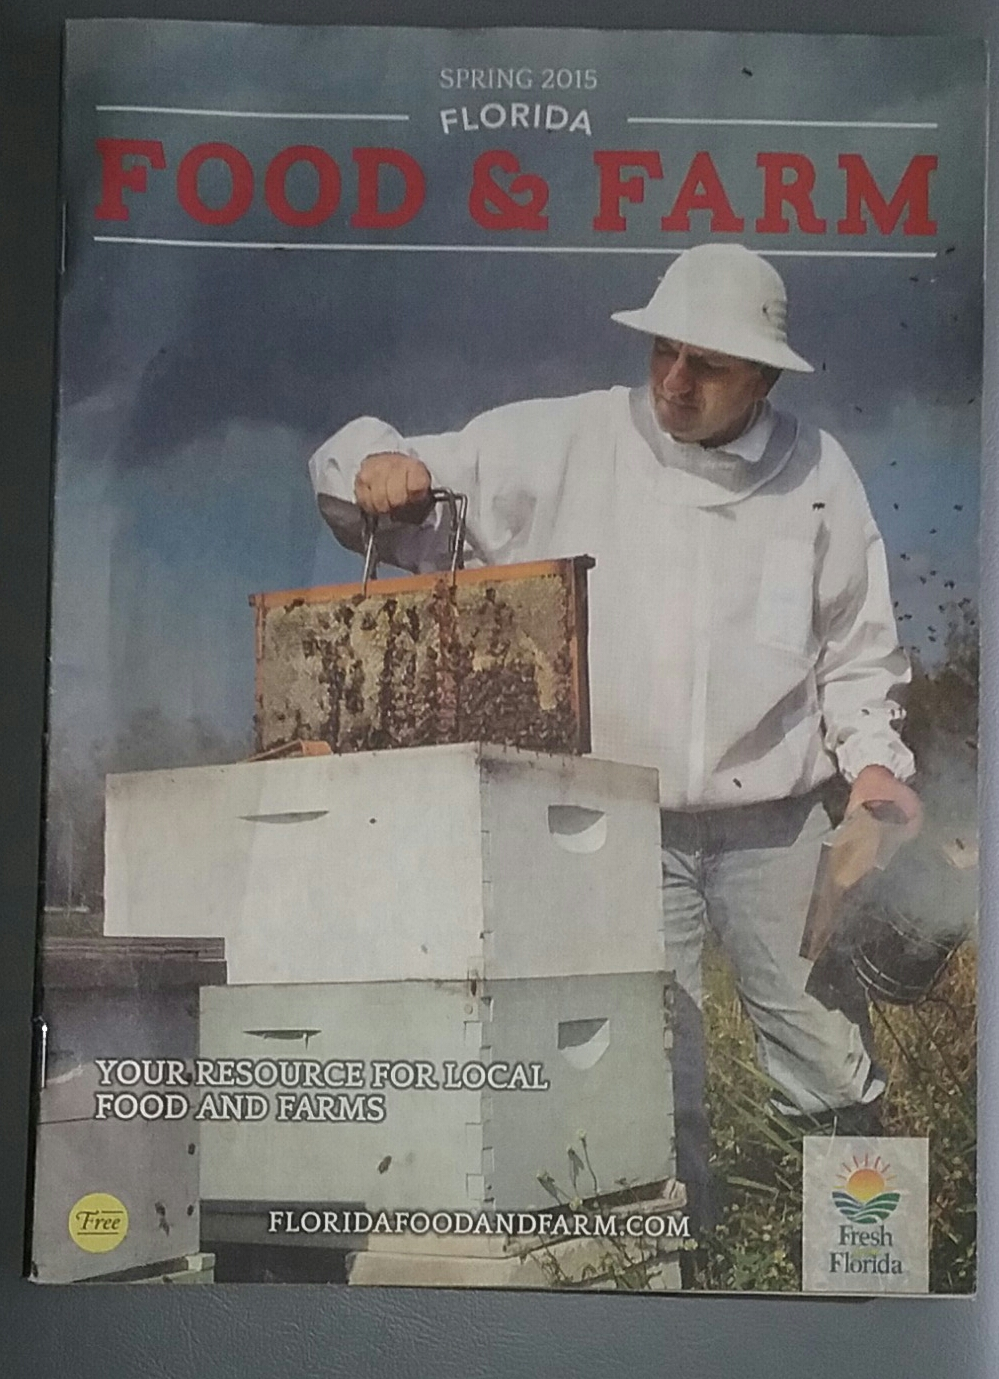 Food and farm magazene with Steve Byers pulling a bee frame out of a bee hive